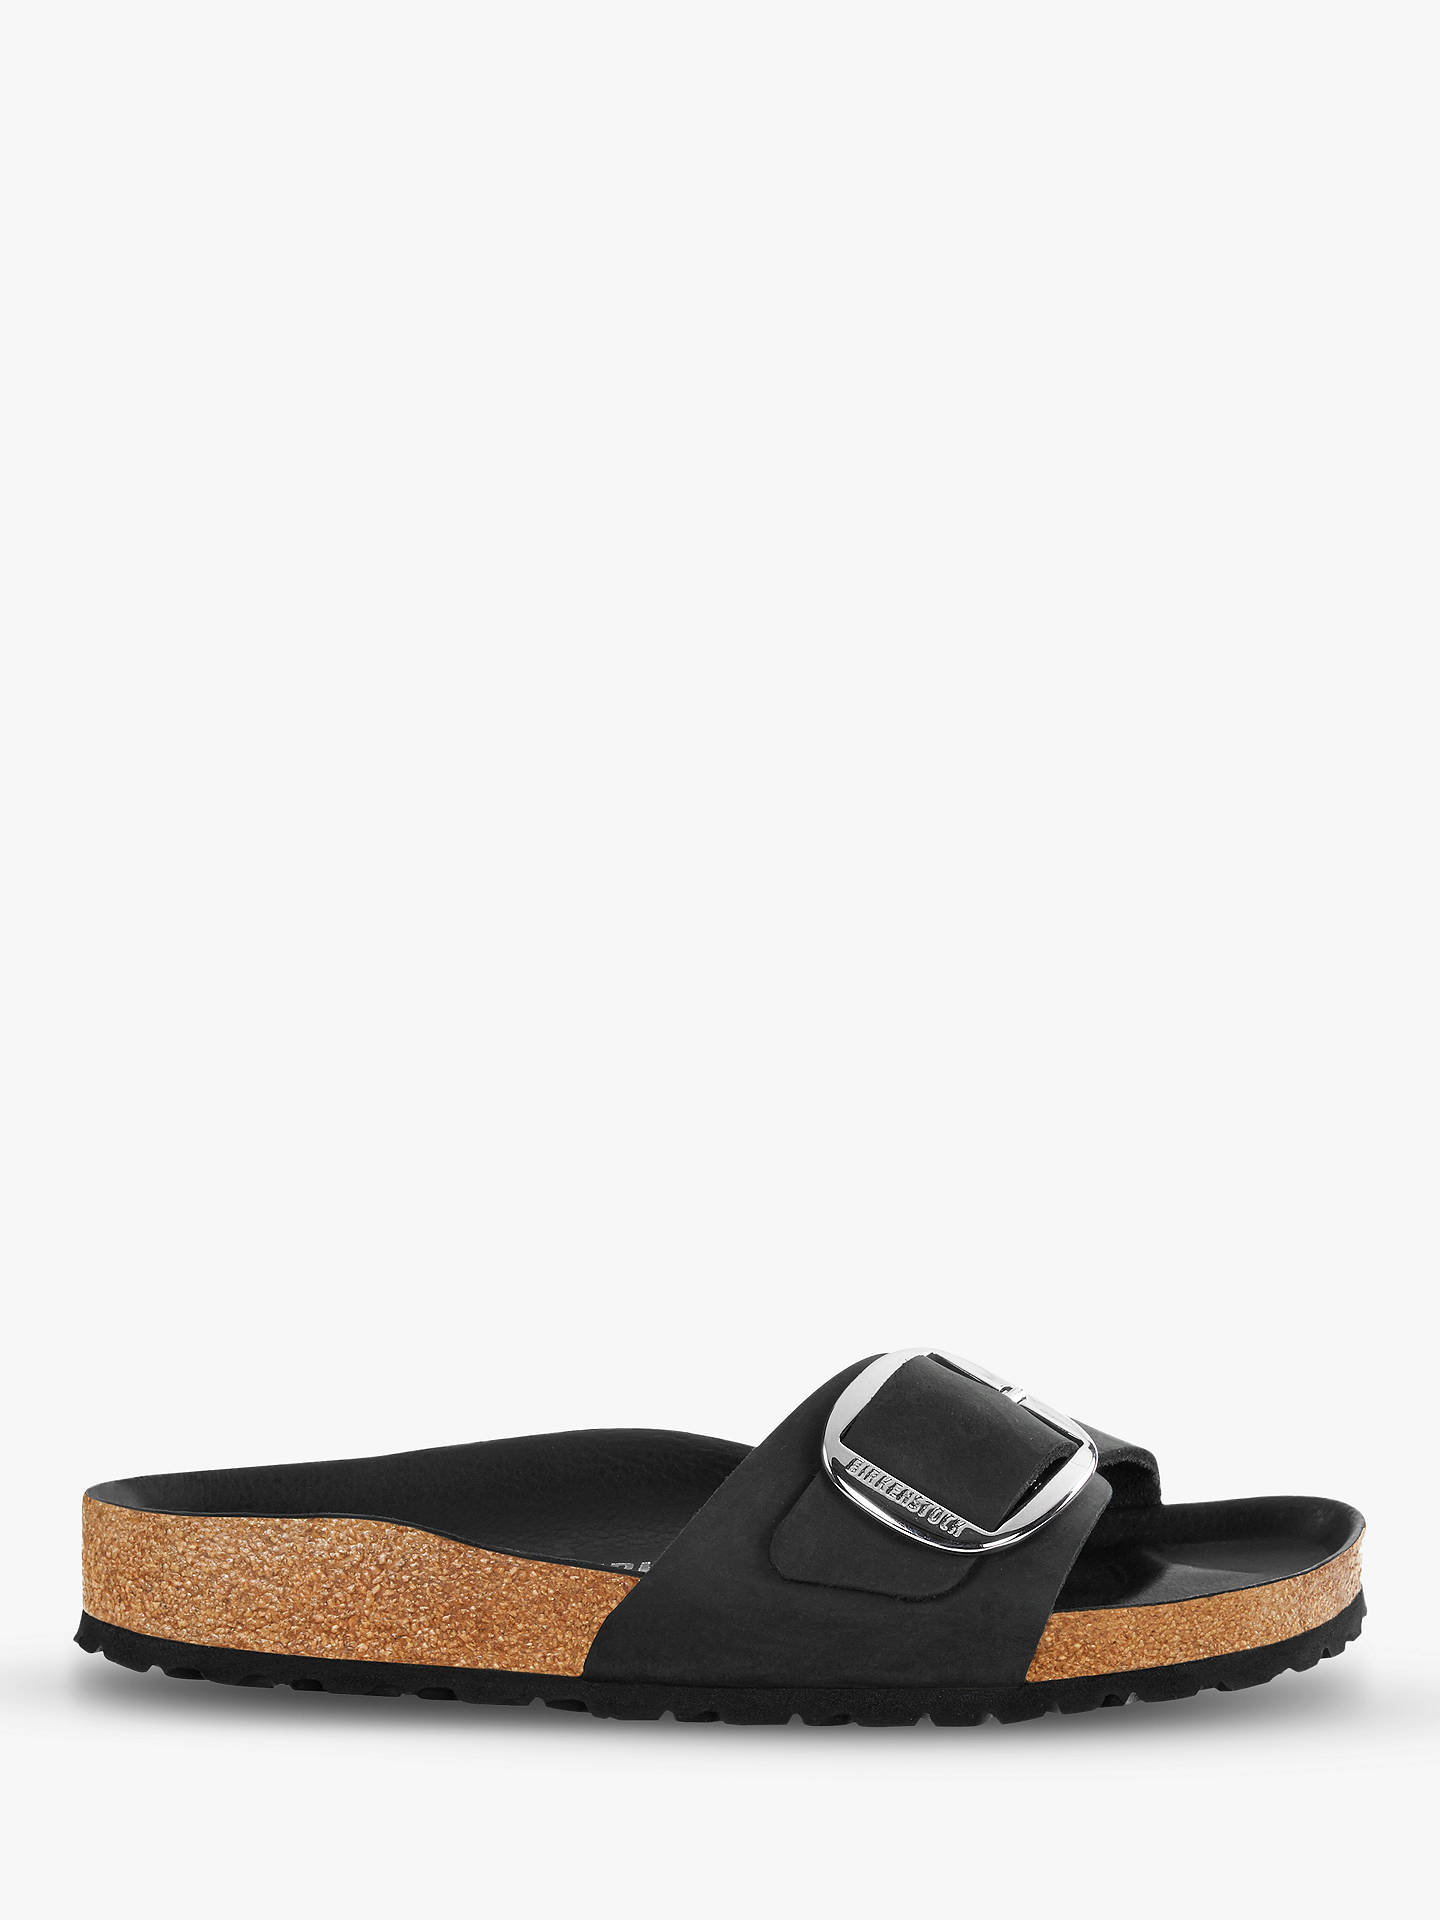 bb38c2cabc9 Buy Birkenstock Narrow Madrid Open Toe Buckle Sandals, Black, 7 Online at  johnlewis.